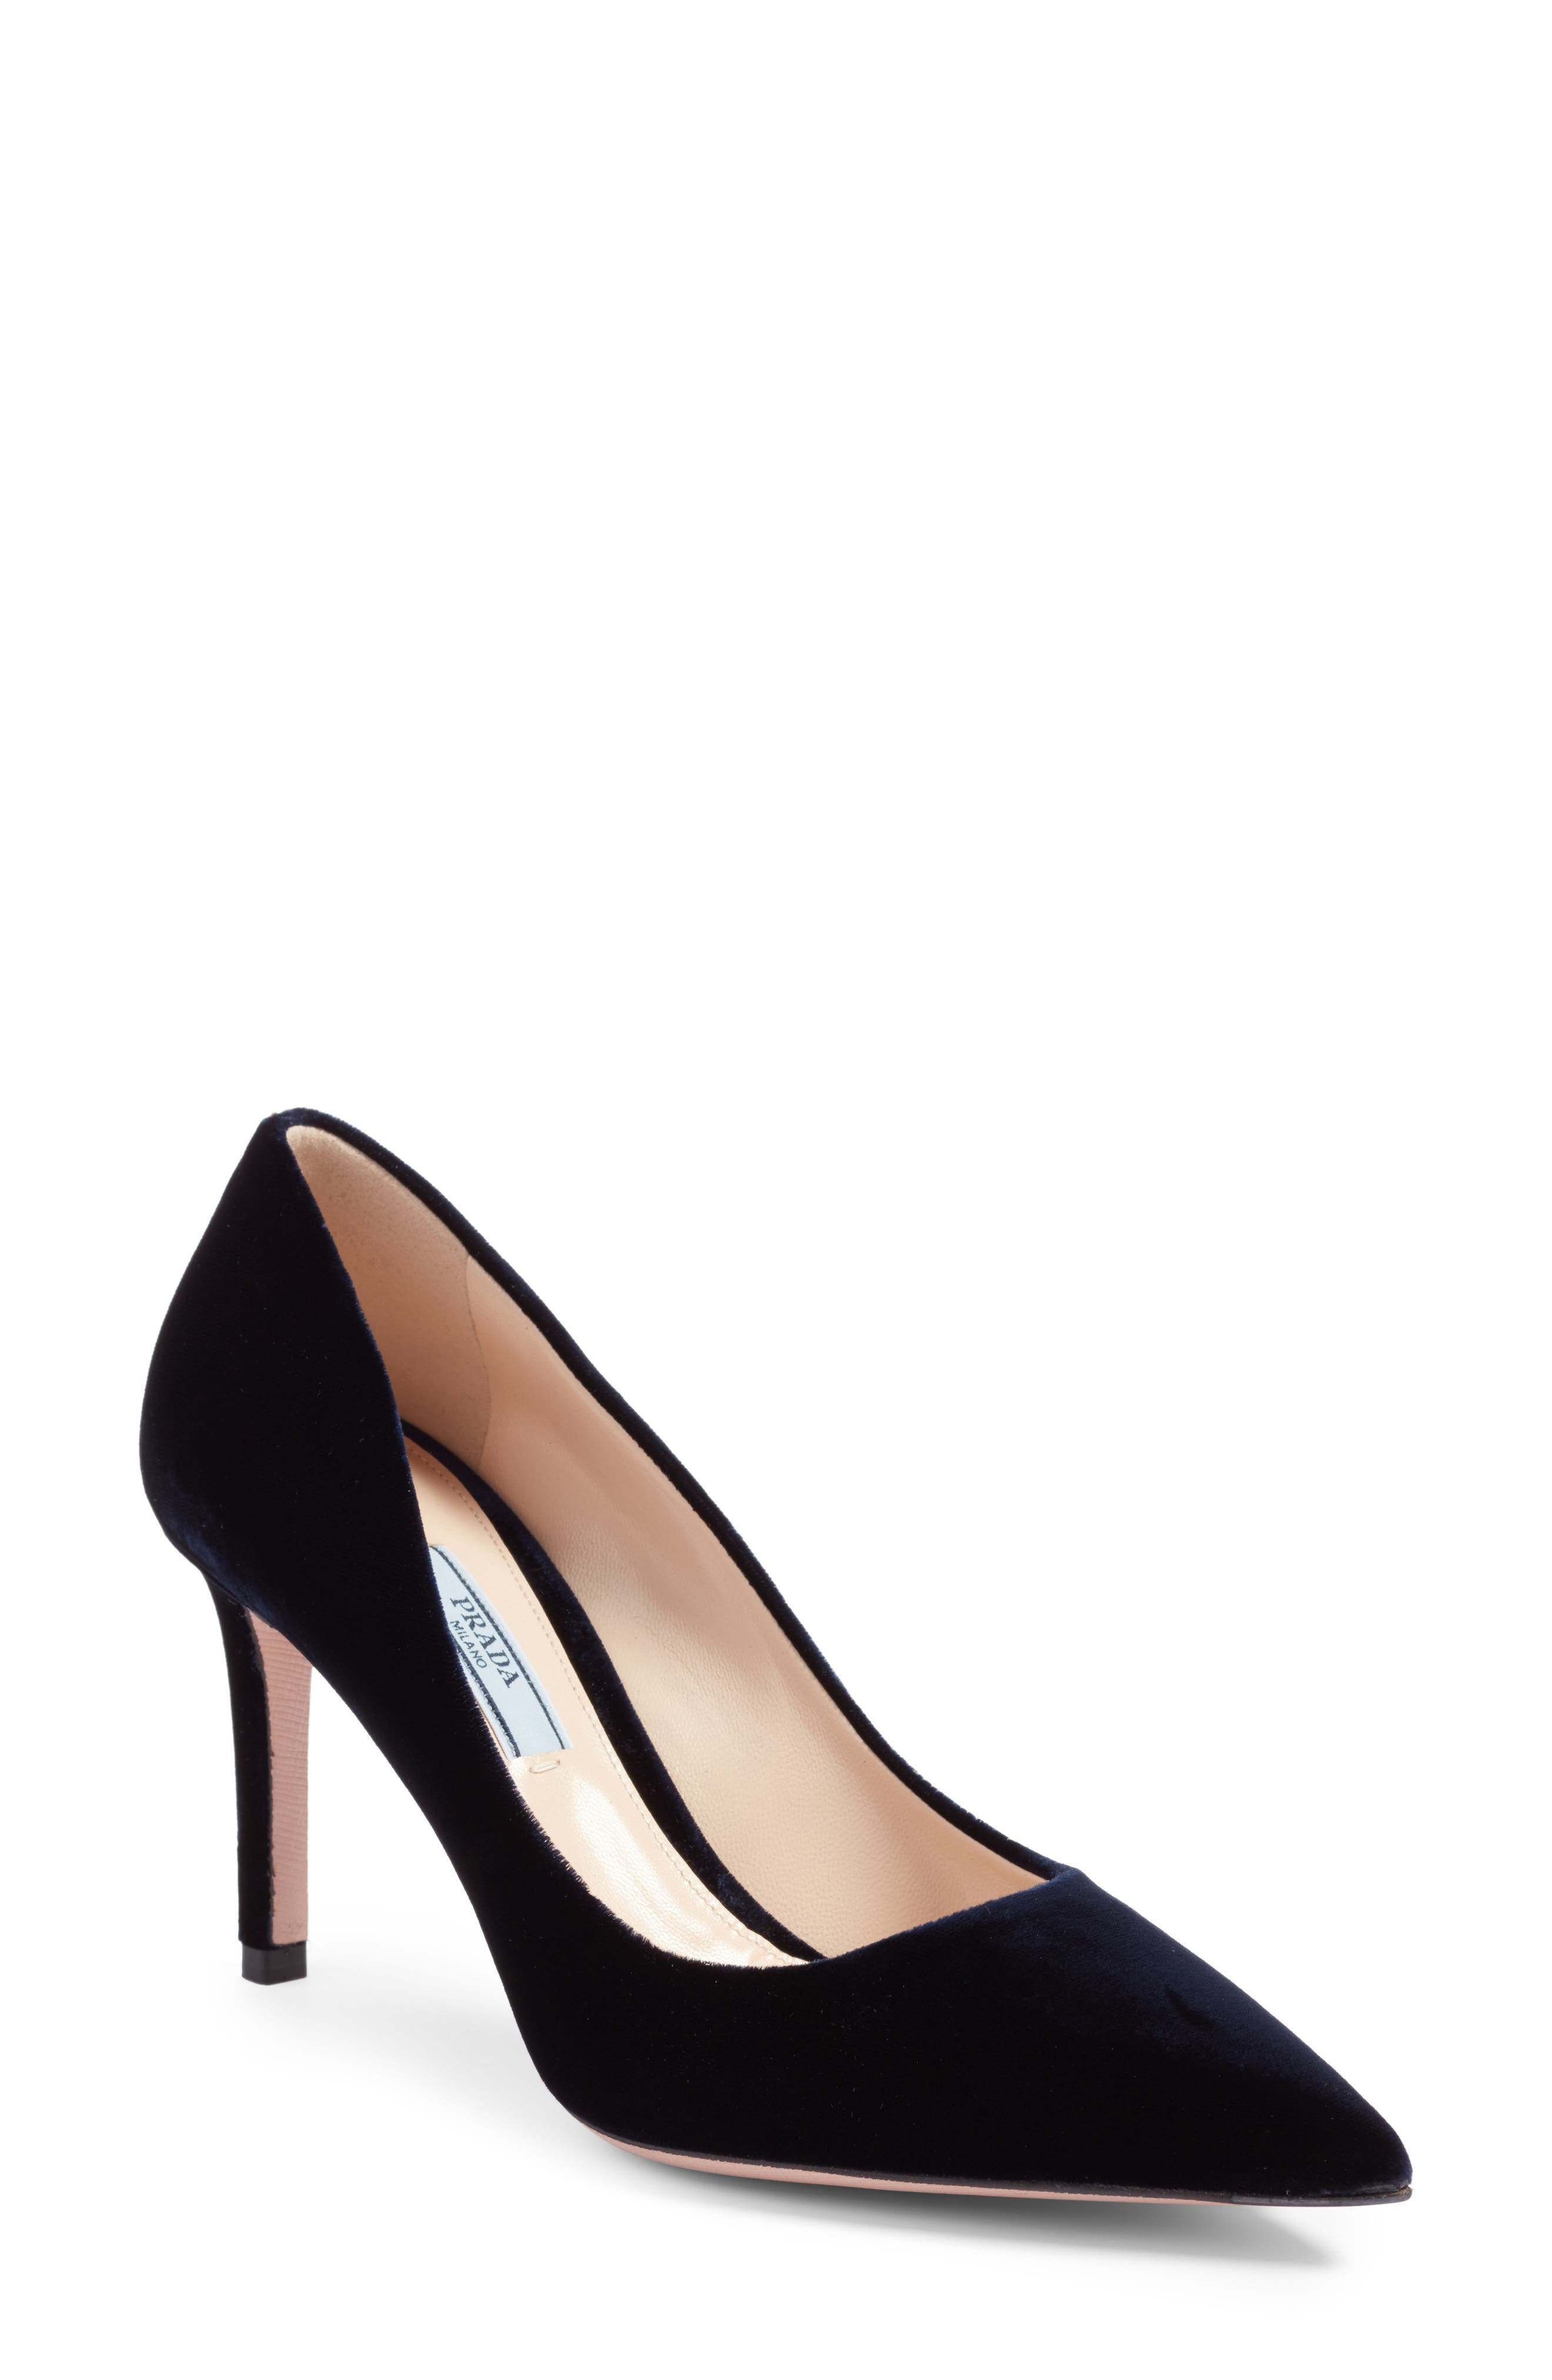 Alternate Image 1 Selected - Prada Classic Pump (Women)